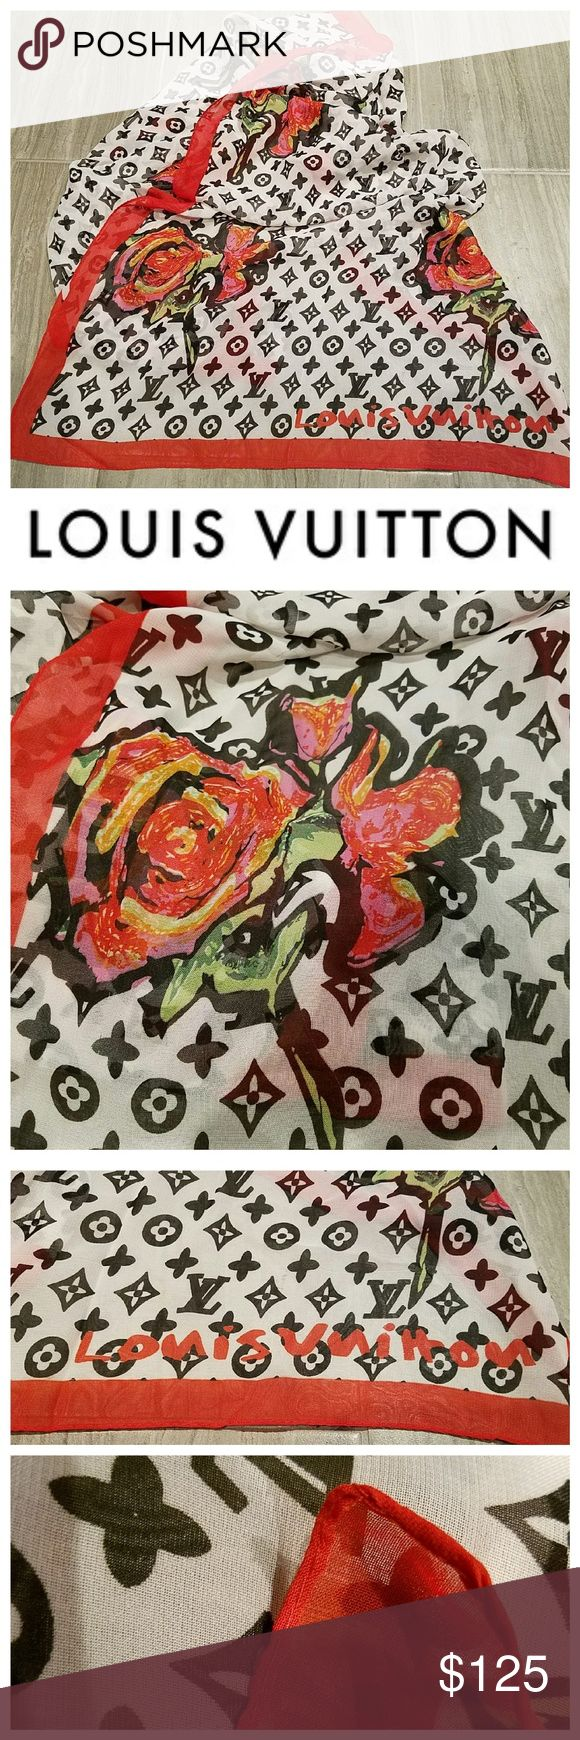 Beautiful LOUIS VUITTON Stephen Sprouse Roses Scar Gorgeous Scarf from Stephen Sprouse for Louis Vuitton. Red Roses on White Background with the LV logo in Black. Made in Italy, 100% Silk, Hand Rolled Edges. Tag has fell off and there is some runs in the material. No holes or stains. Louis Vuitton Other